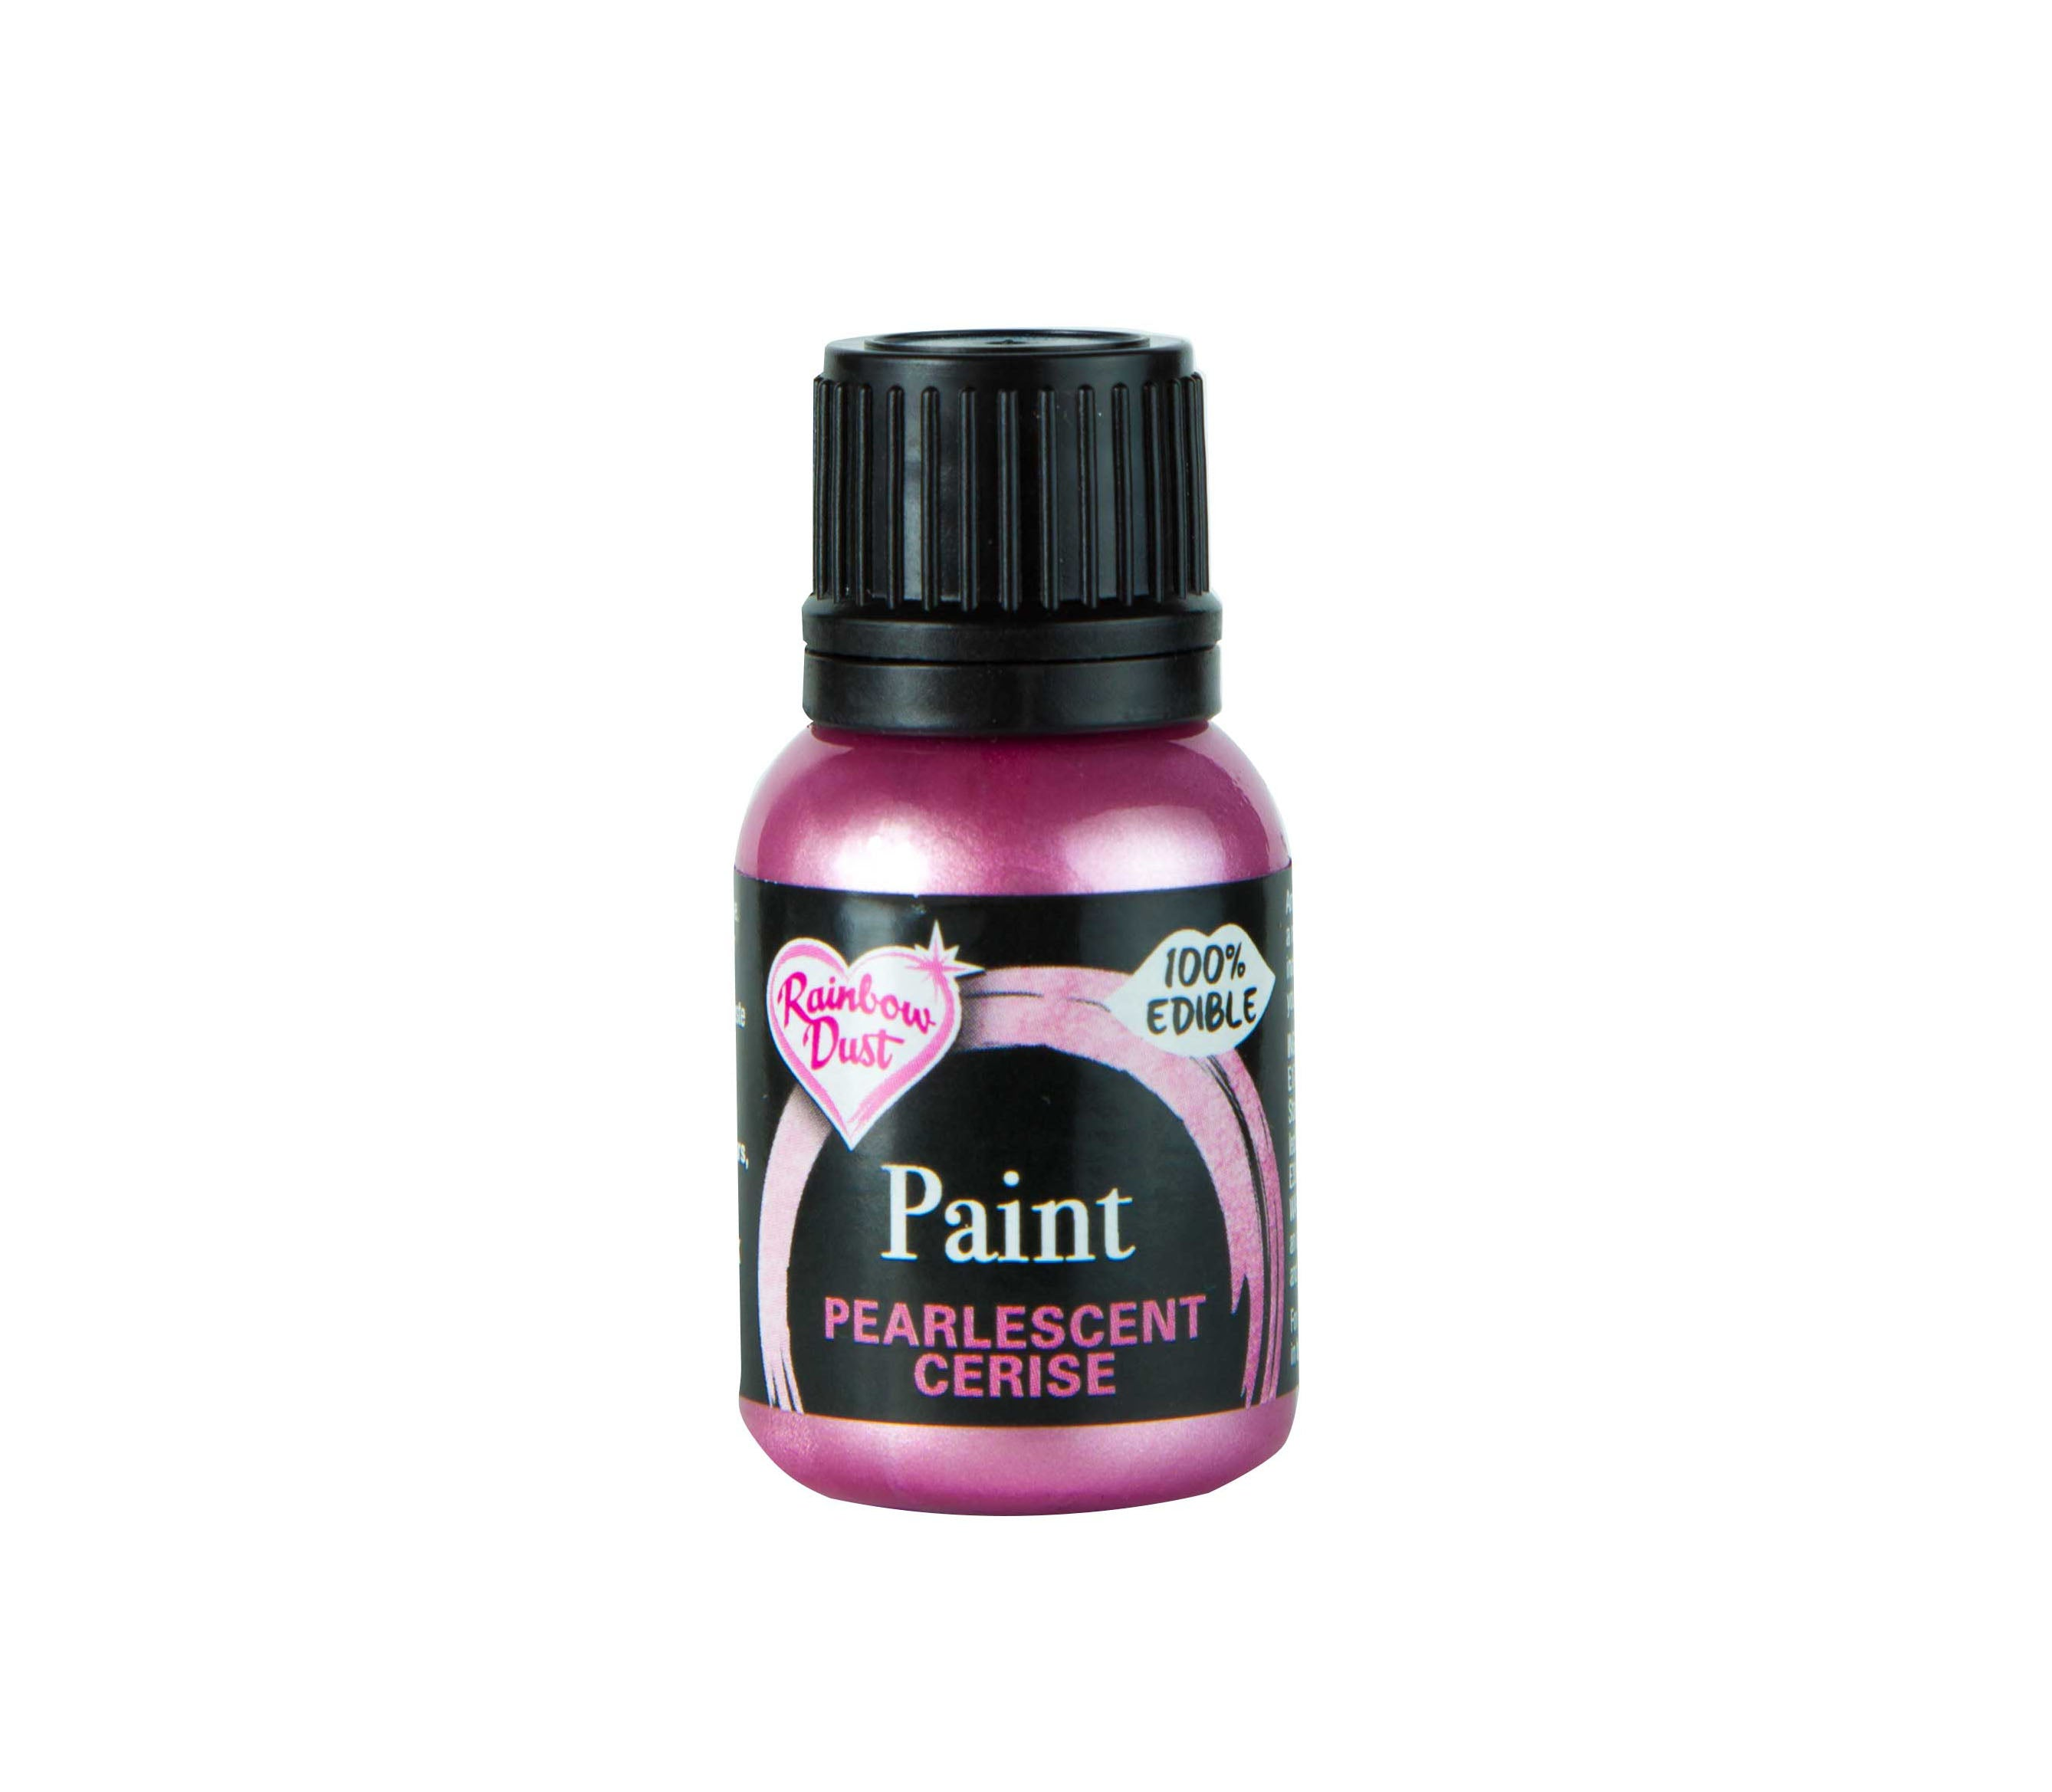 Edible Paints Pearl Cerise 25g